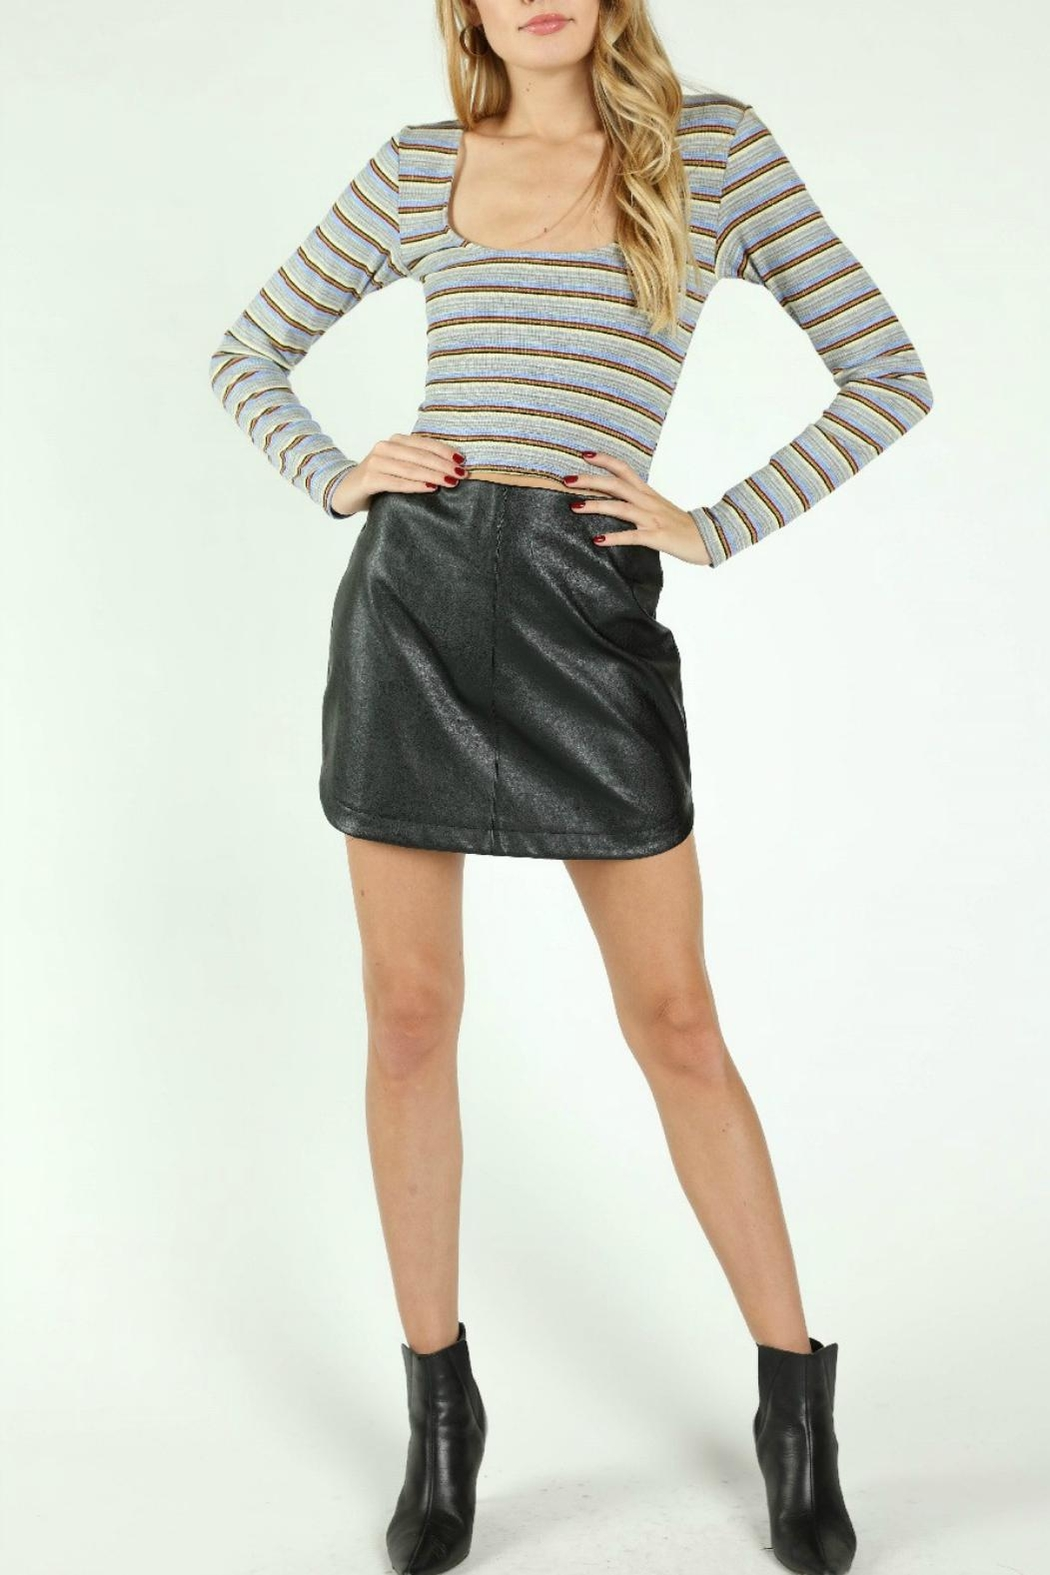 Pretty Little Things Rounded Leather Skirt - Main Image